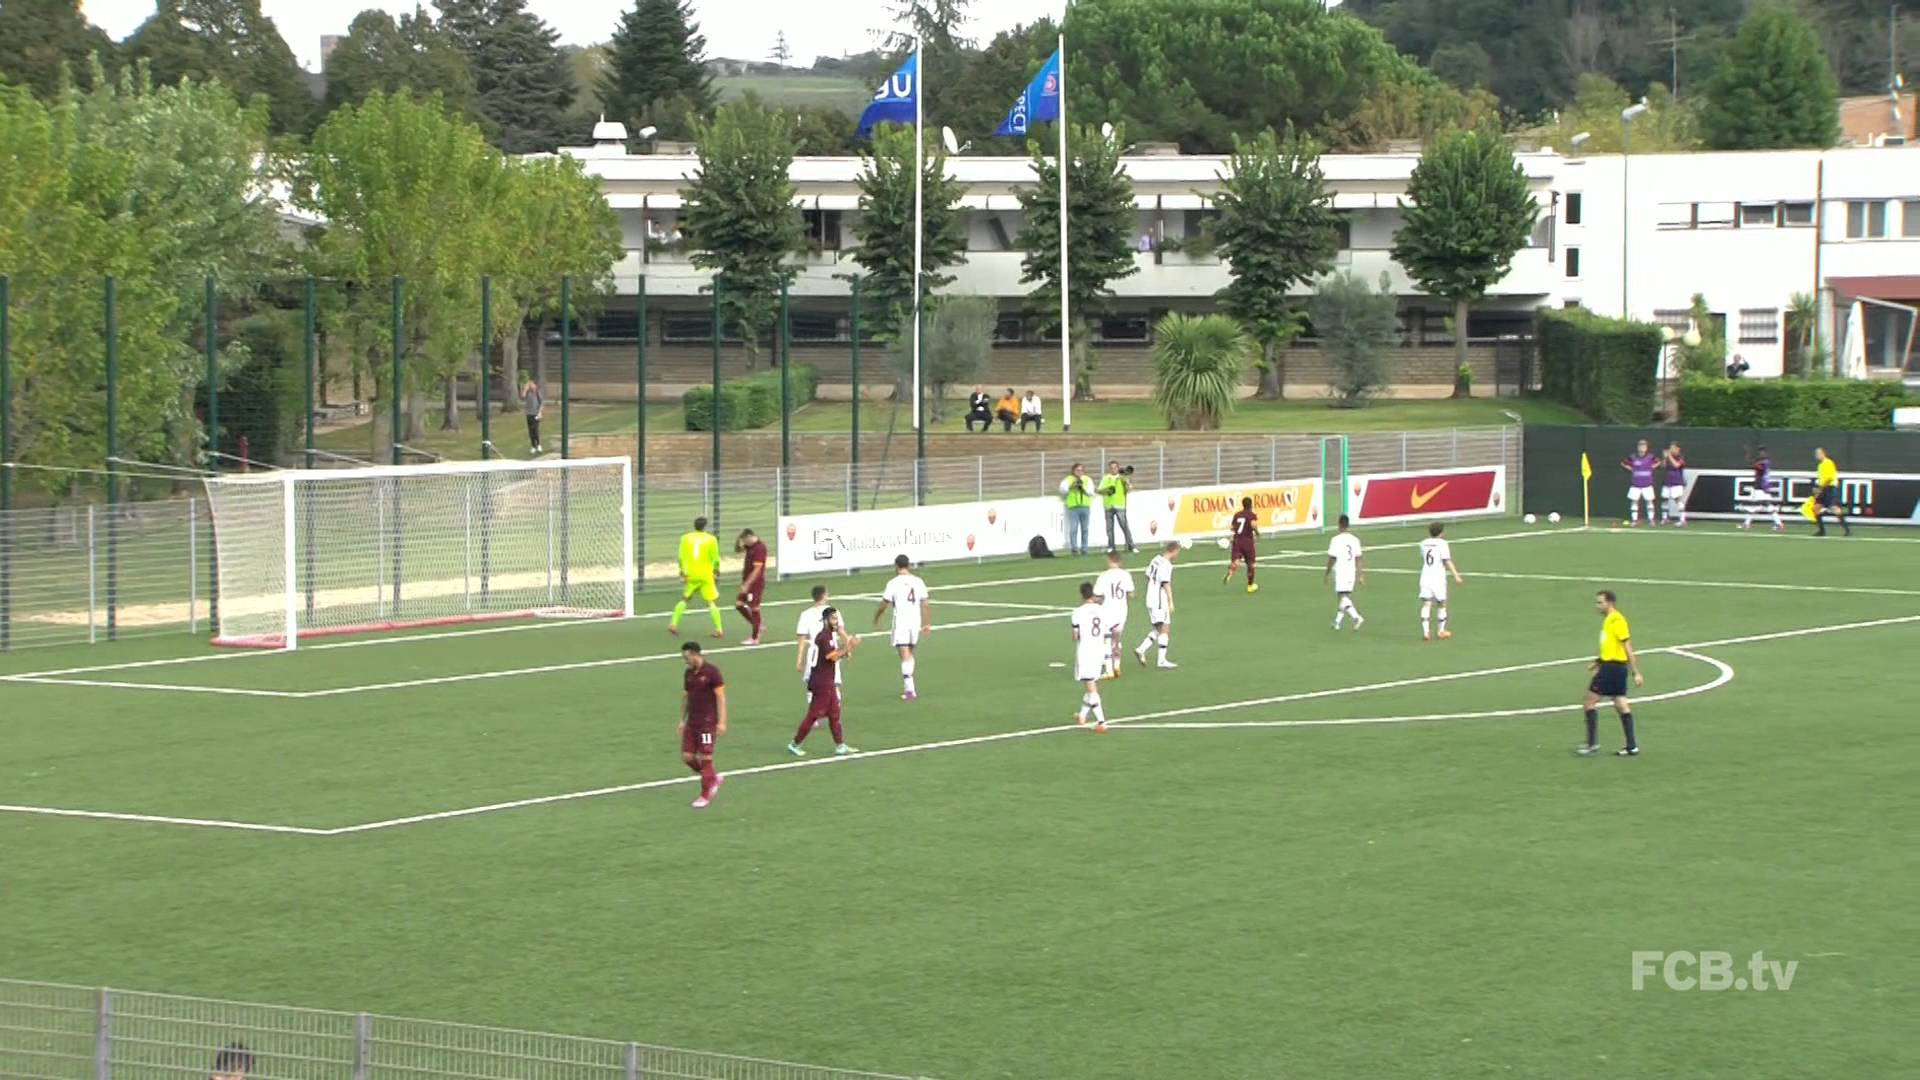 UEFA Youth League AS Rom vs. FC Bayern